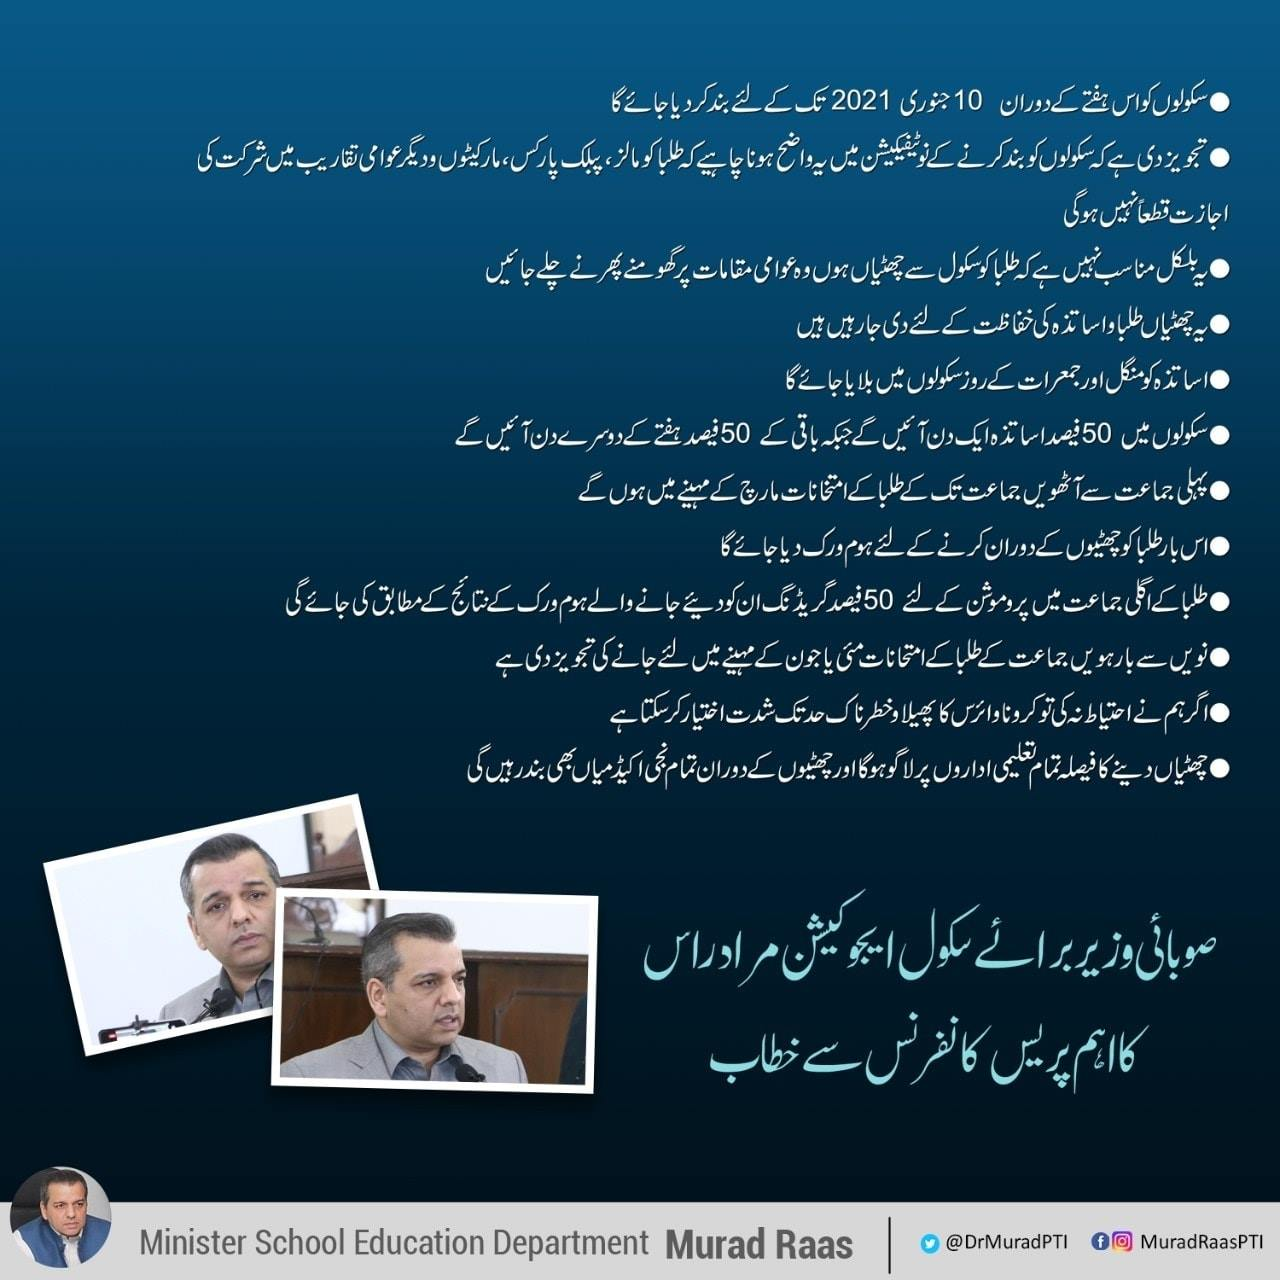 Holidays in Educational Institutions wef 26th Nov 2020 and Murad Raas Press Conference